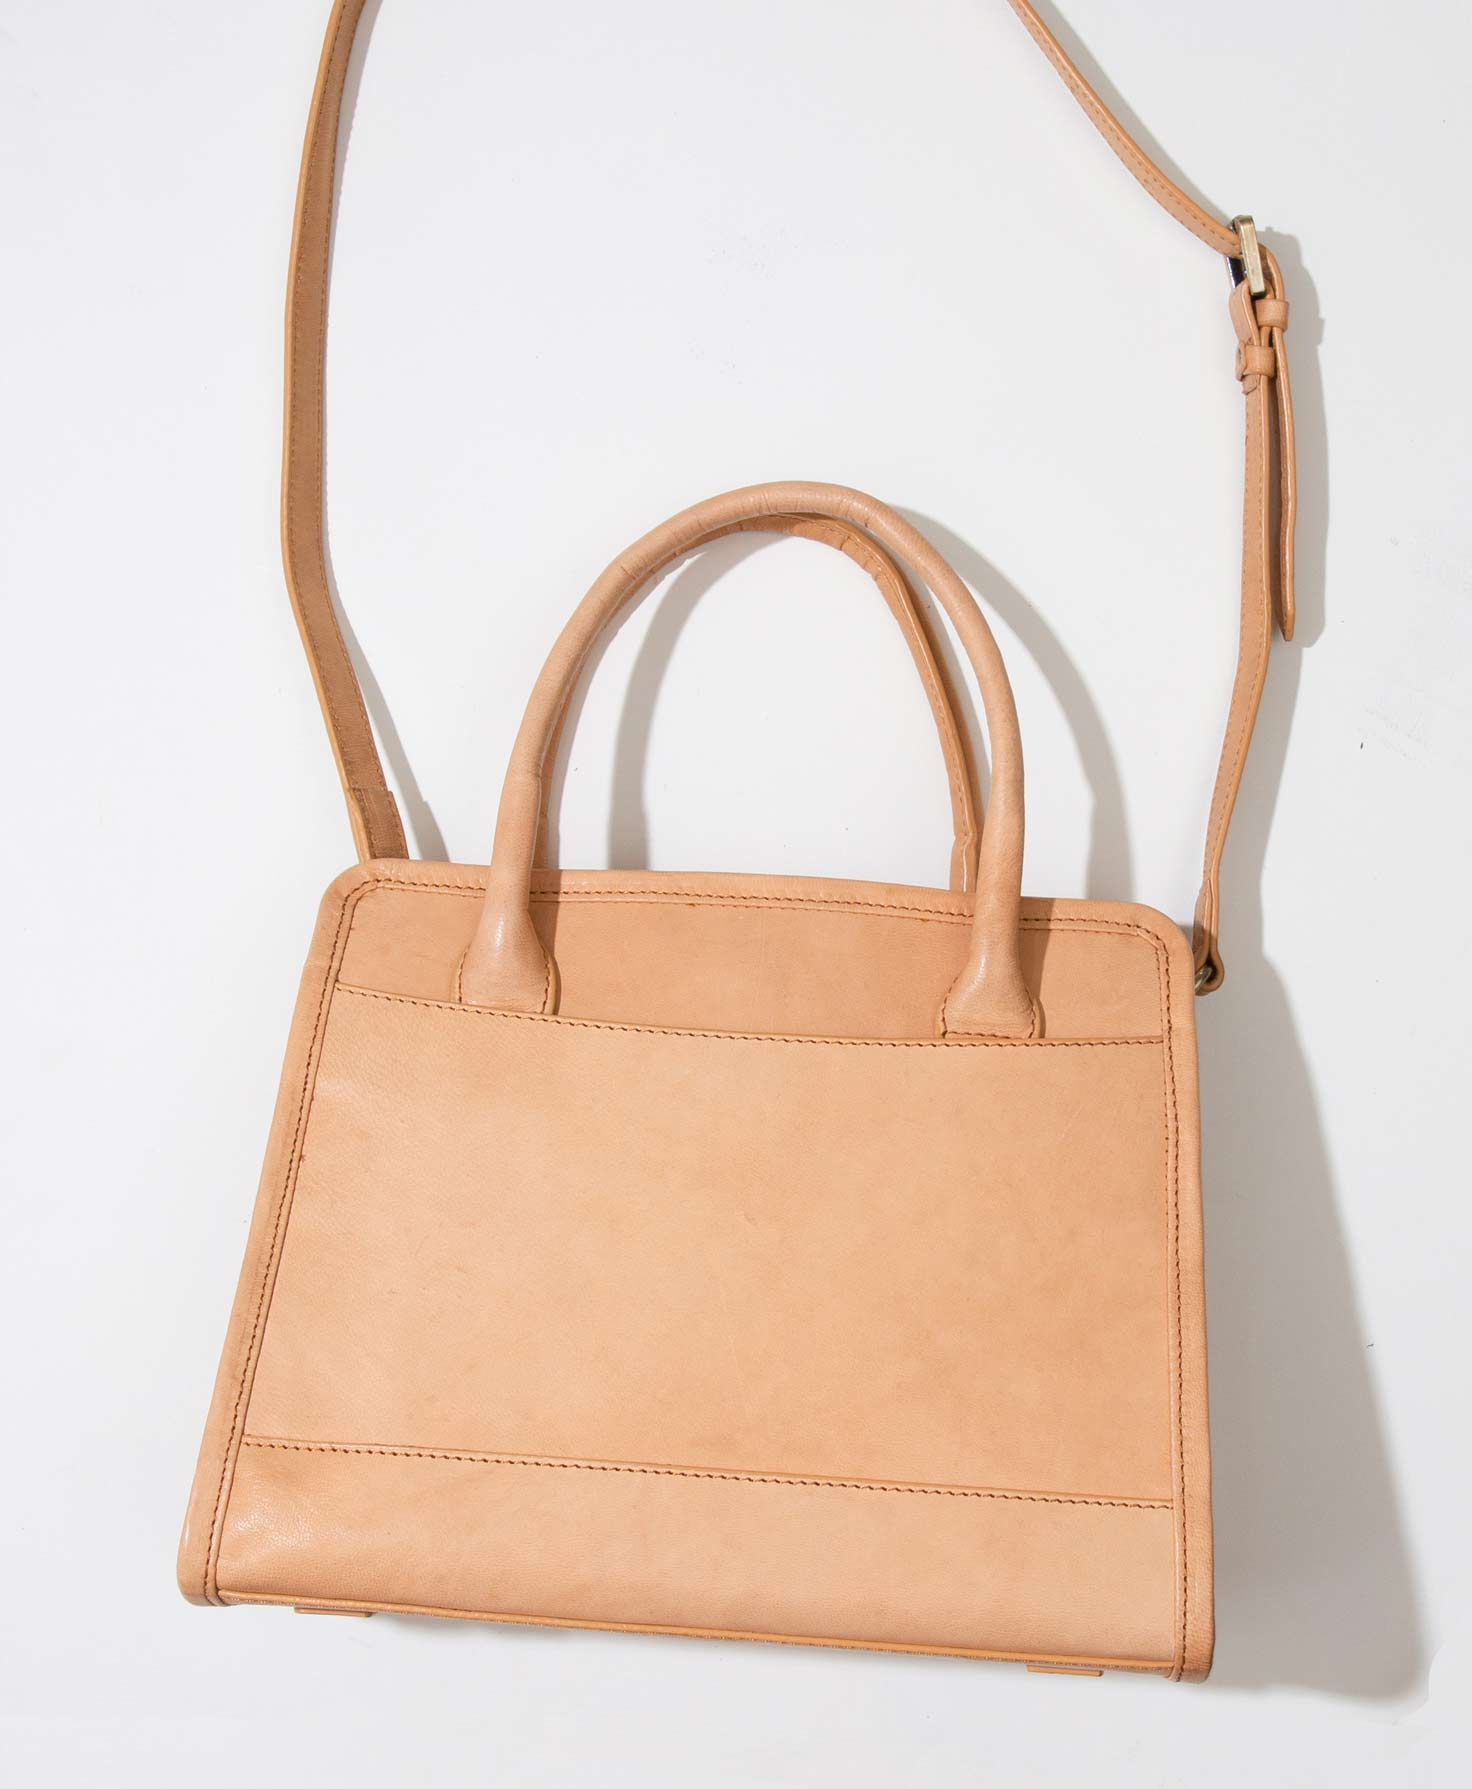 The Bravo Bag sits upright on a white platform. It is made of light caramel-colored leather and has a roughly square shape. It is slightly wider than it is high. The bag has a flat bottom panel, allowing it to sit upright. It has a minimal design with no markings or embellishments. The bag closes via a small leather flap that folds over and is secured via a magnetic closure. There are two leather handles at the top of the bag, as well as a removable leather strap that can be adjusted via a brass buckle.